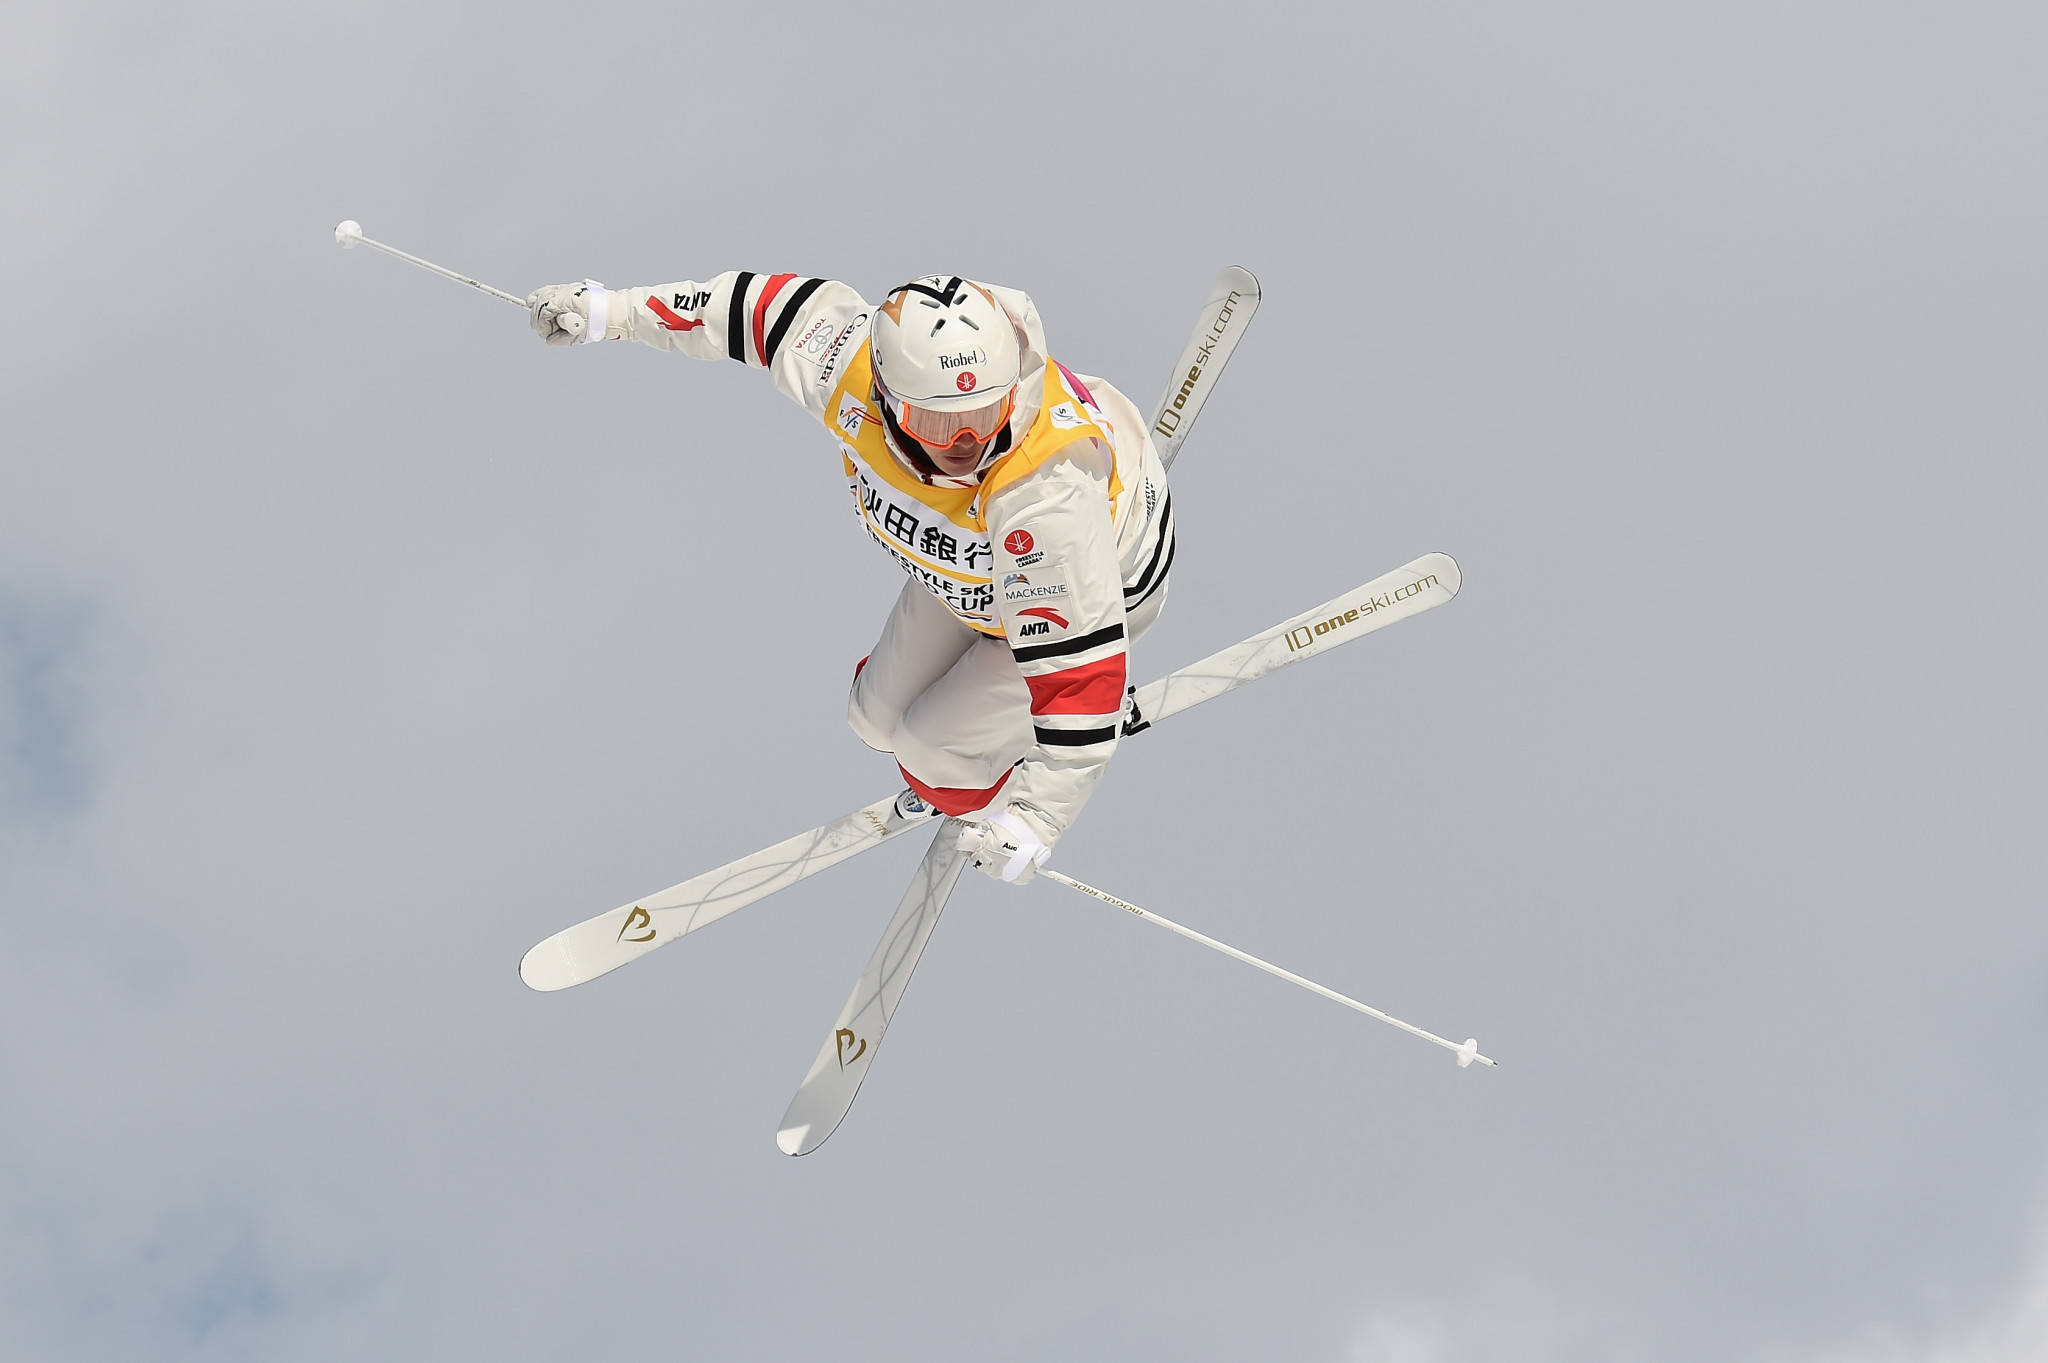 Kingsbury and Laffont extend Moguls World Cup leads with success in Japan